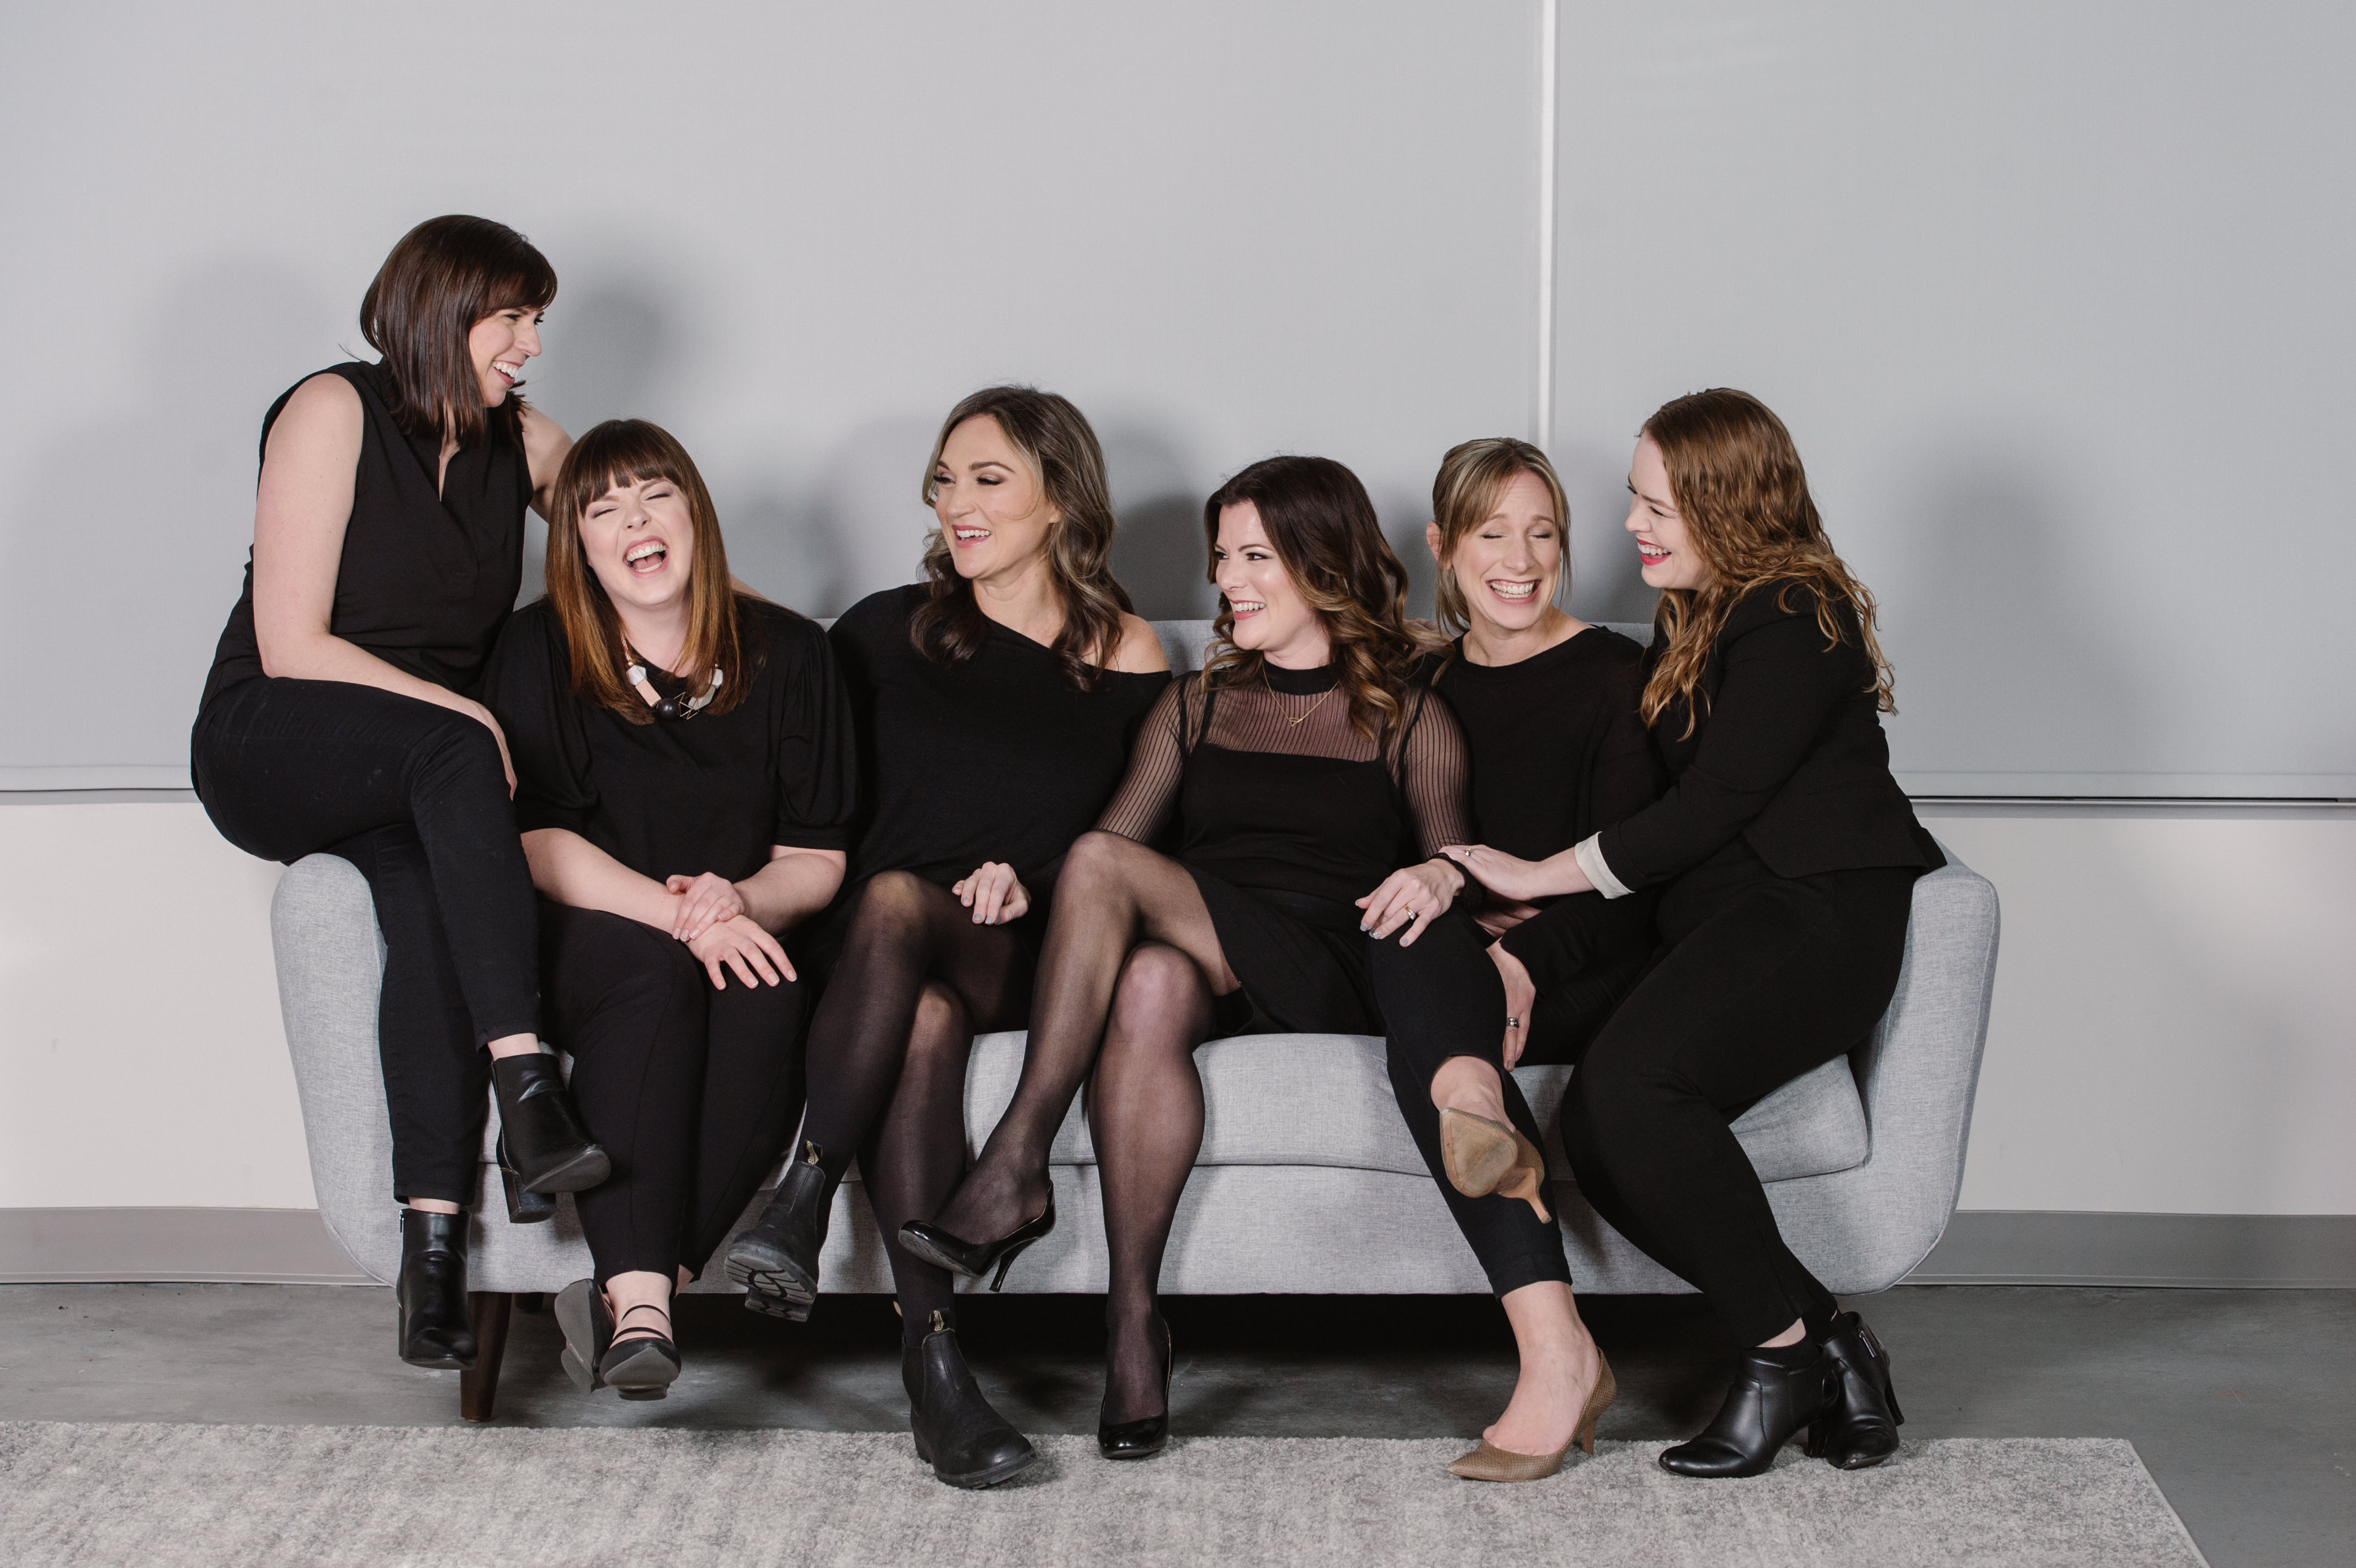 Fun indoor corporate team photo of a group of laughing women Kamloops headshot photographer